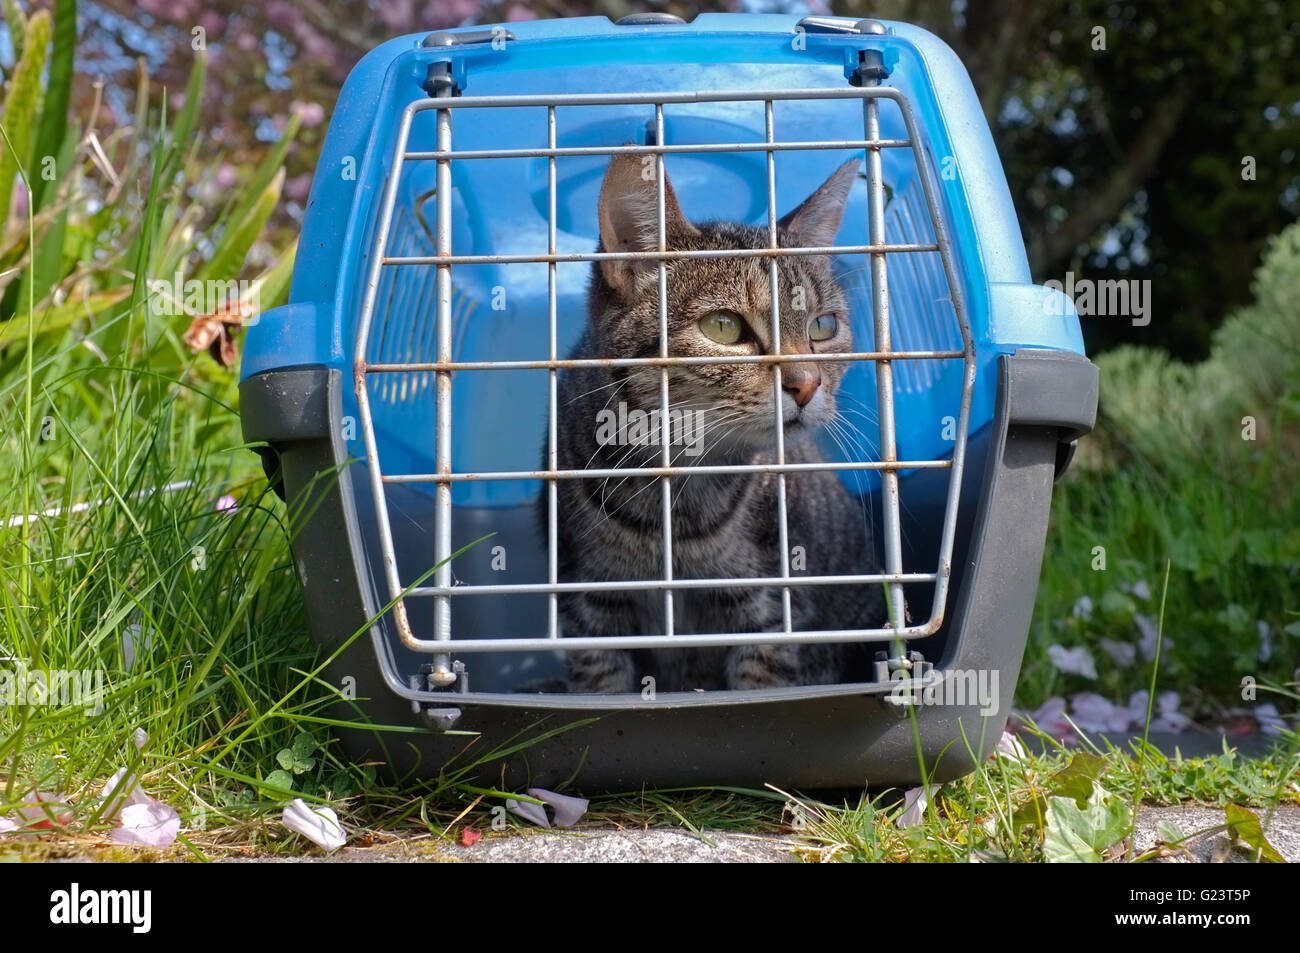 Basket Carrier Stock Photos & Basket Carrier Stock Images - Alamy